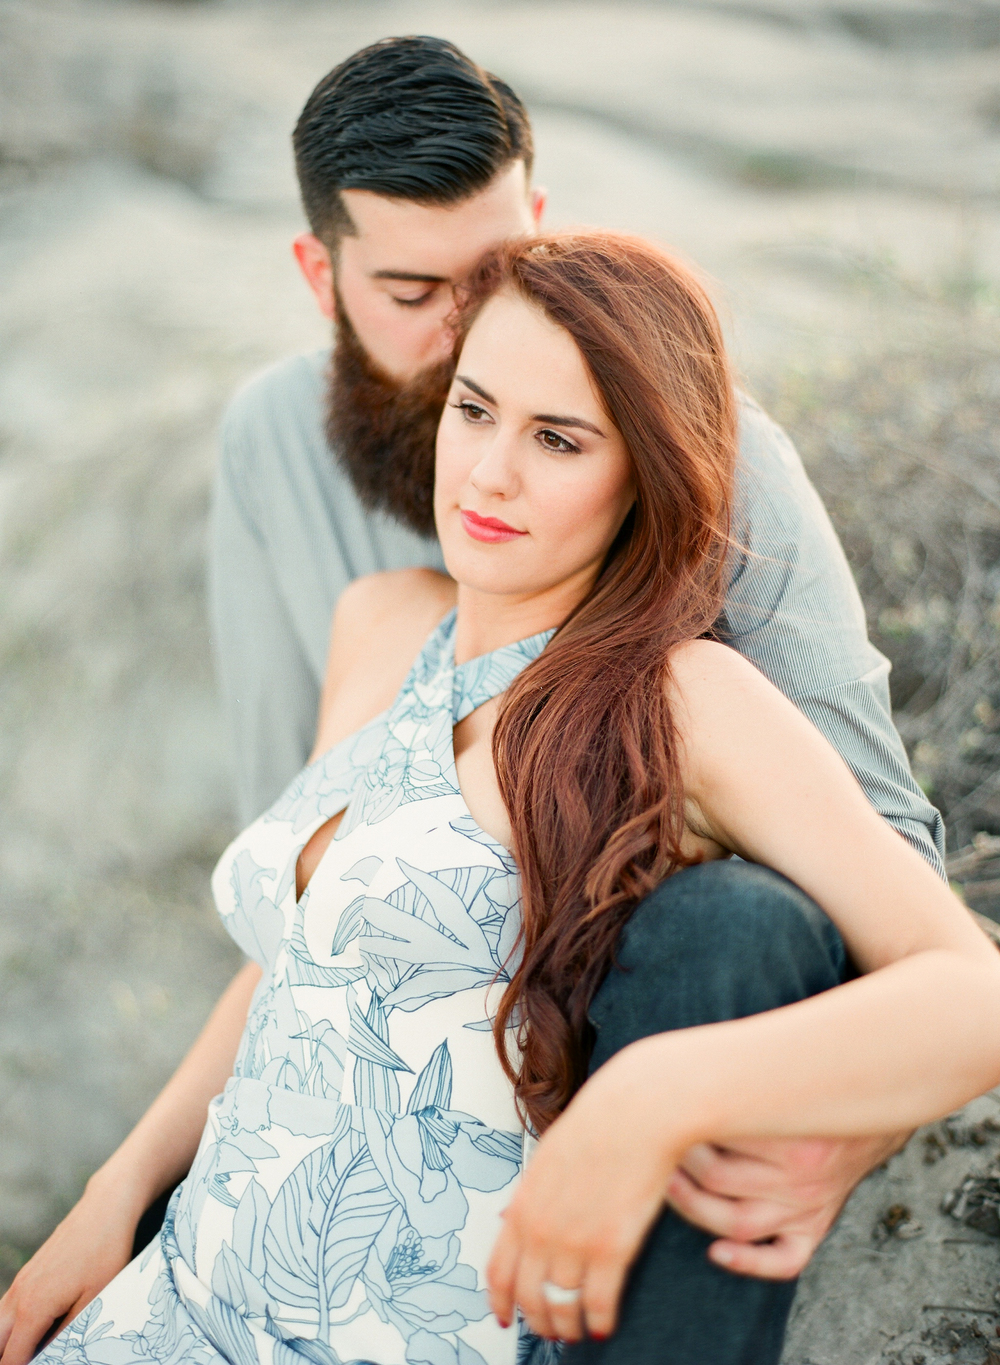 Austin-Texas-Film-Photographer-Engagement-Session-6.jpg